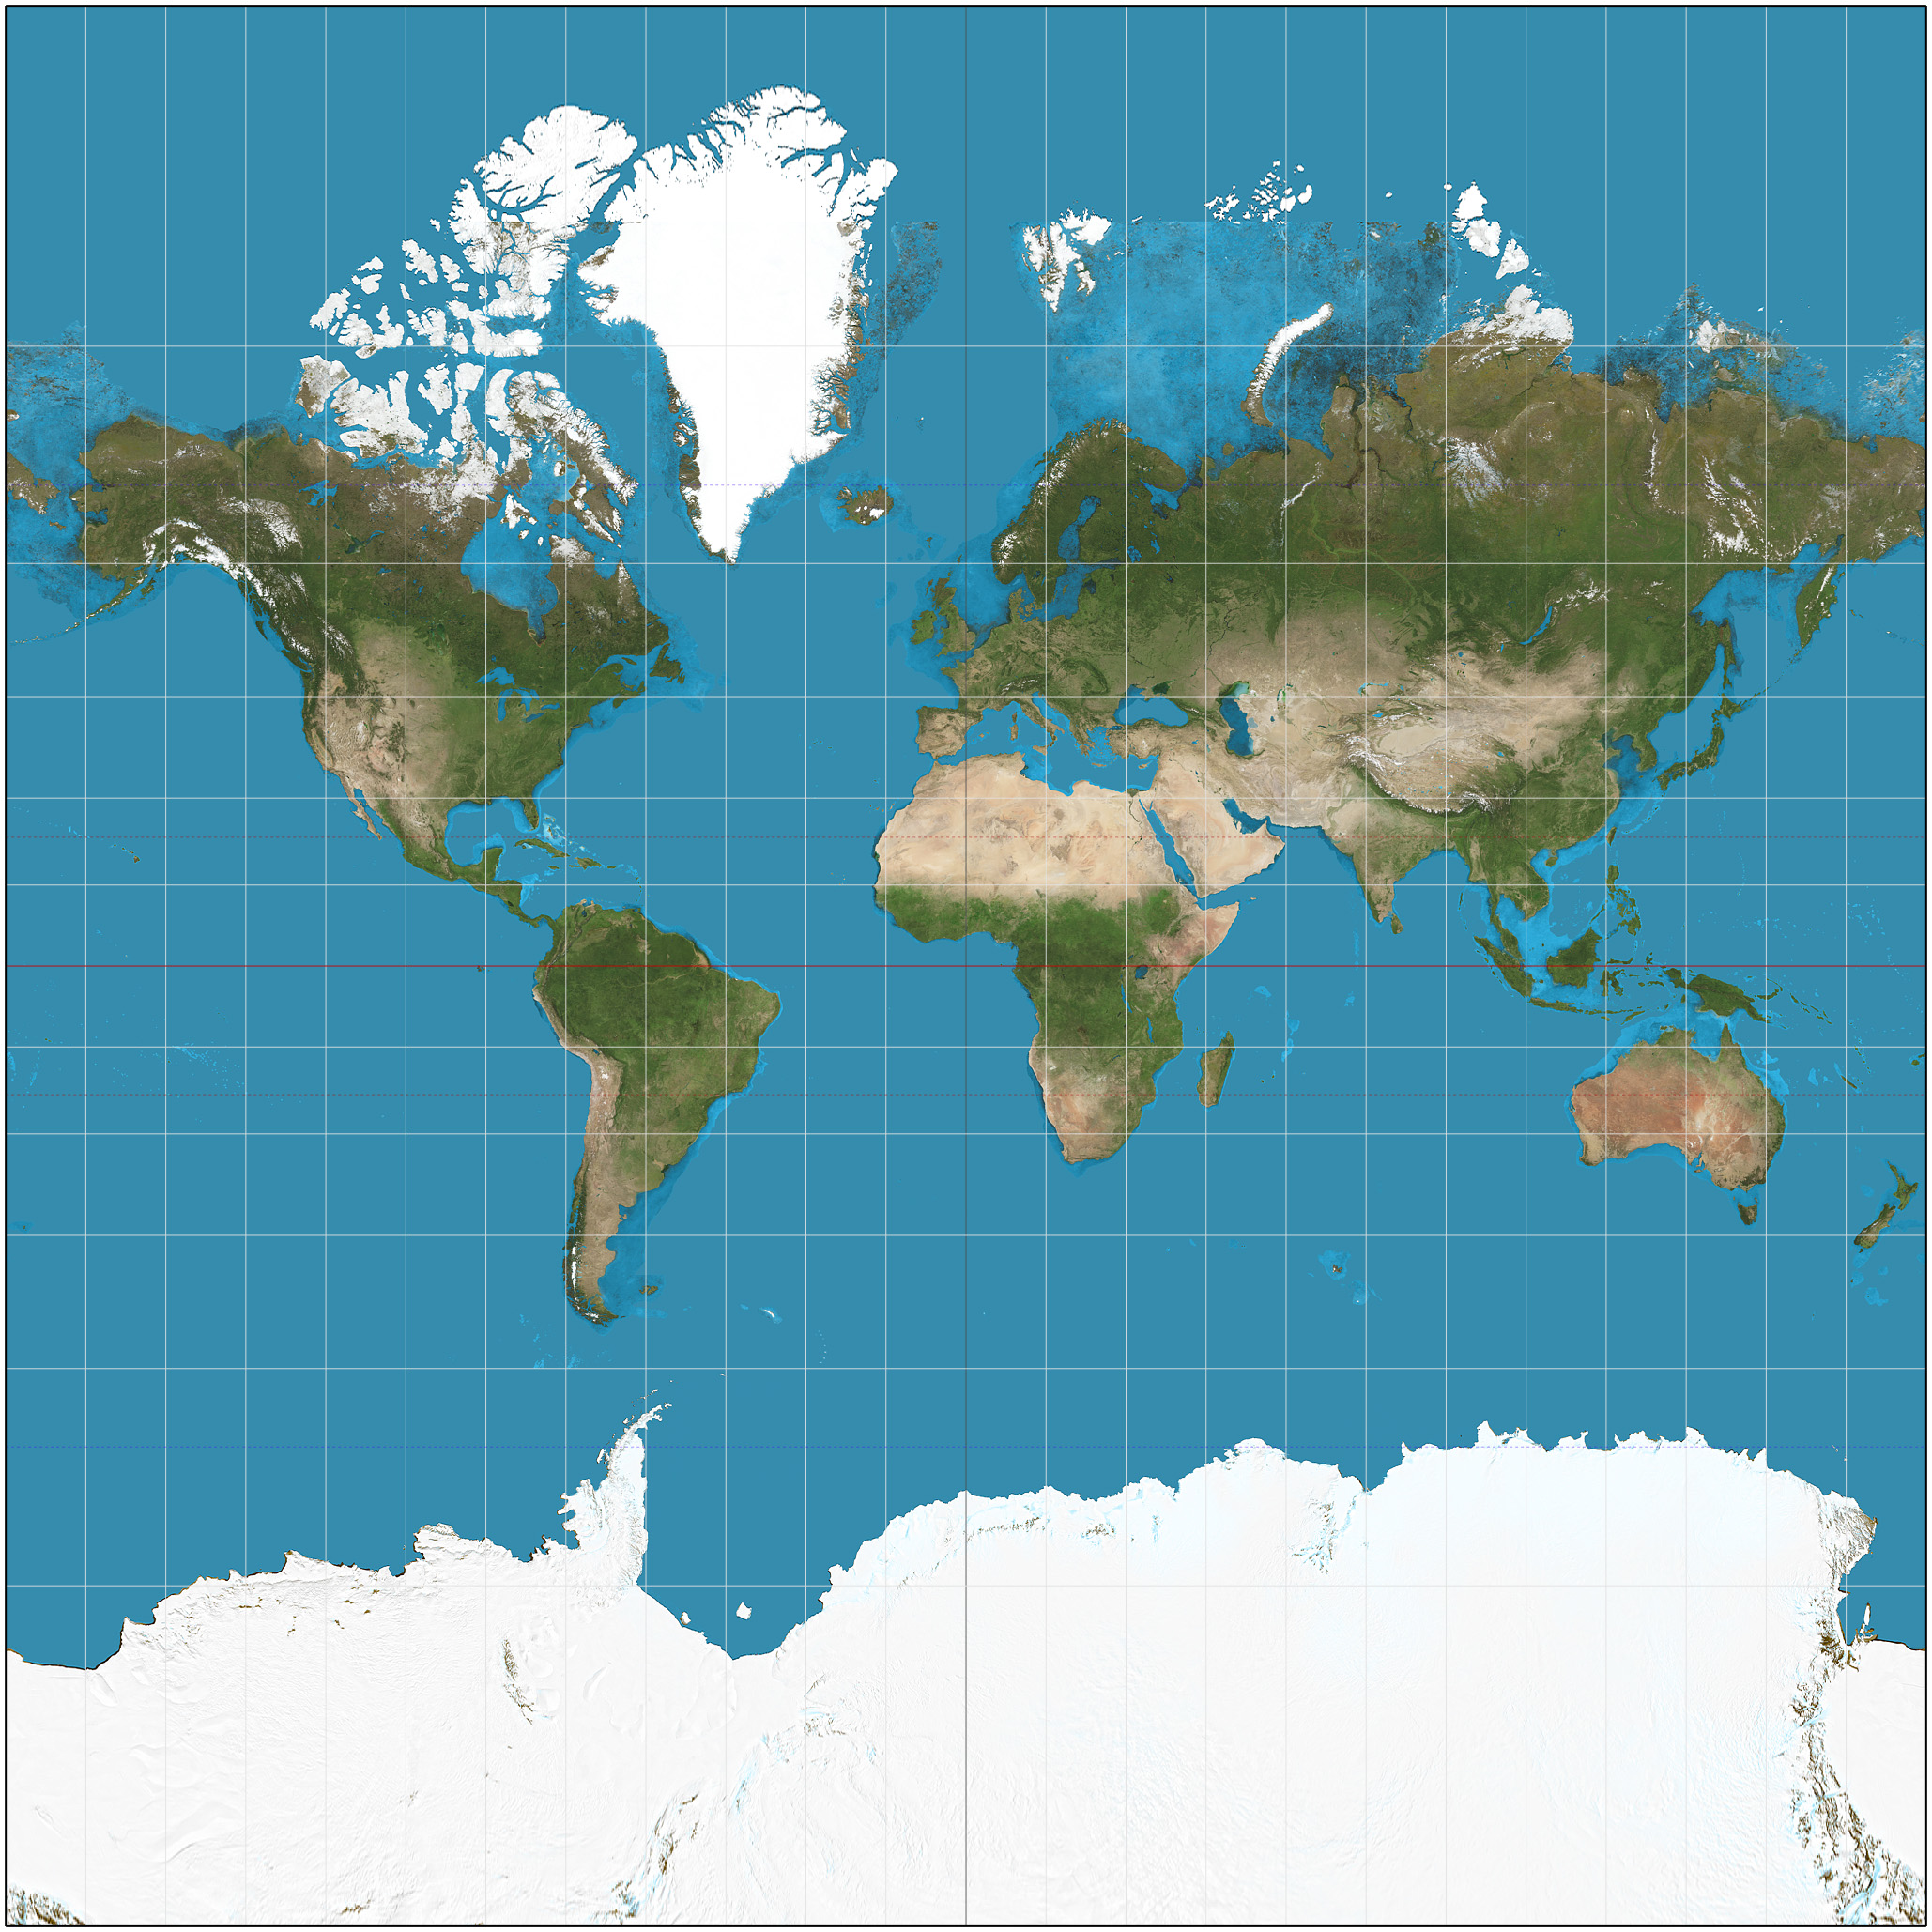 Mercator projection - Wikipedia